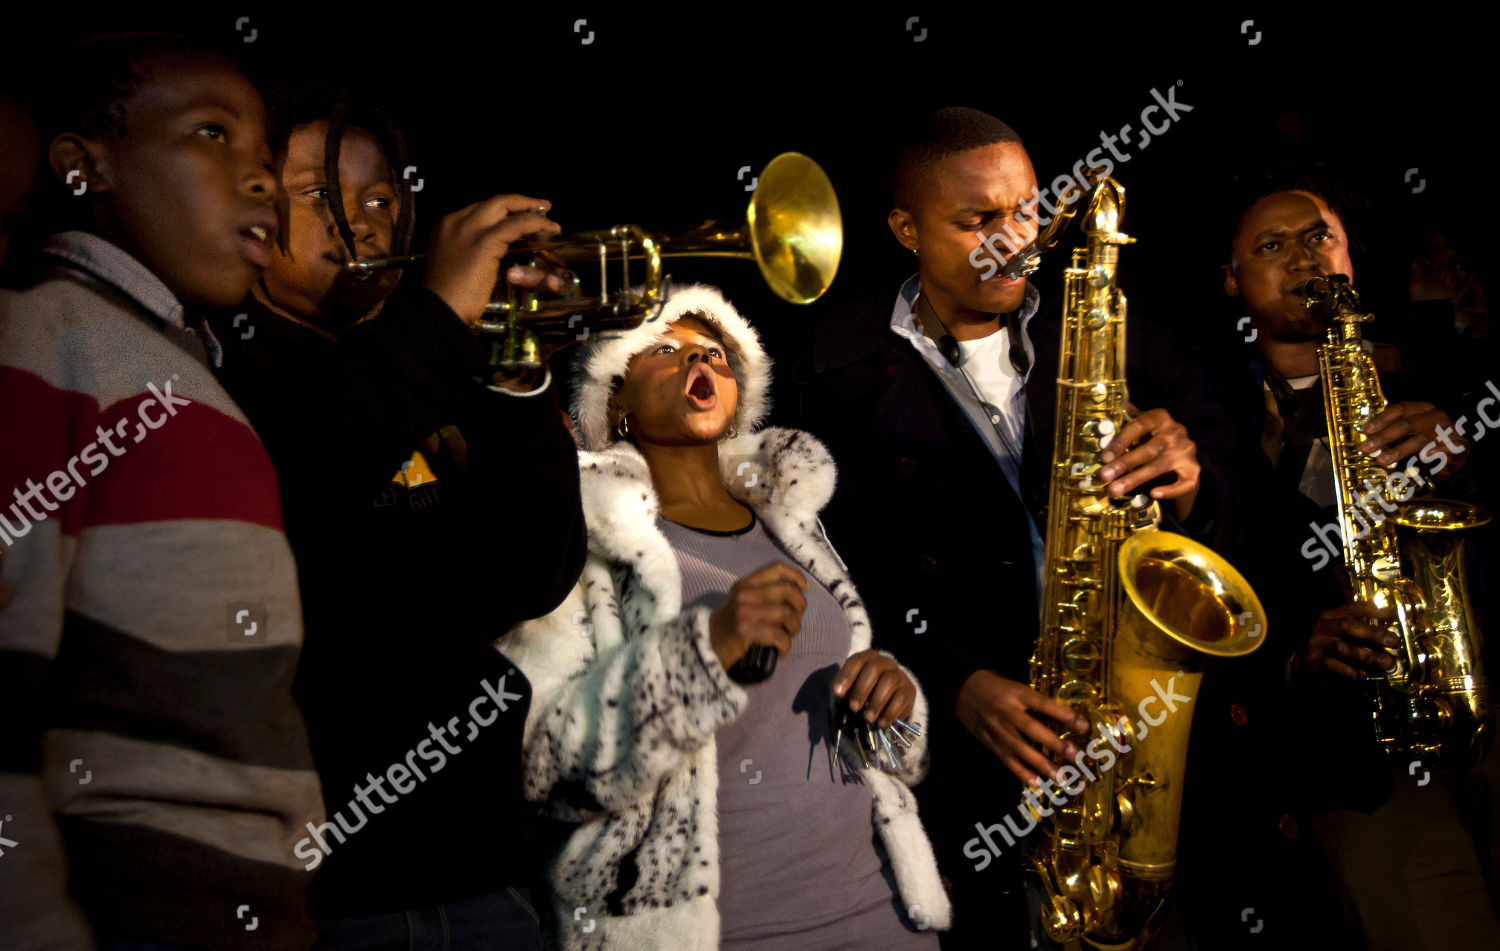 Wellwishers sing songs sound trumpets saxophones show Editorial